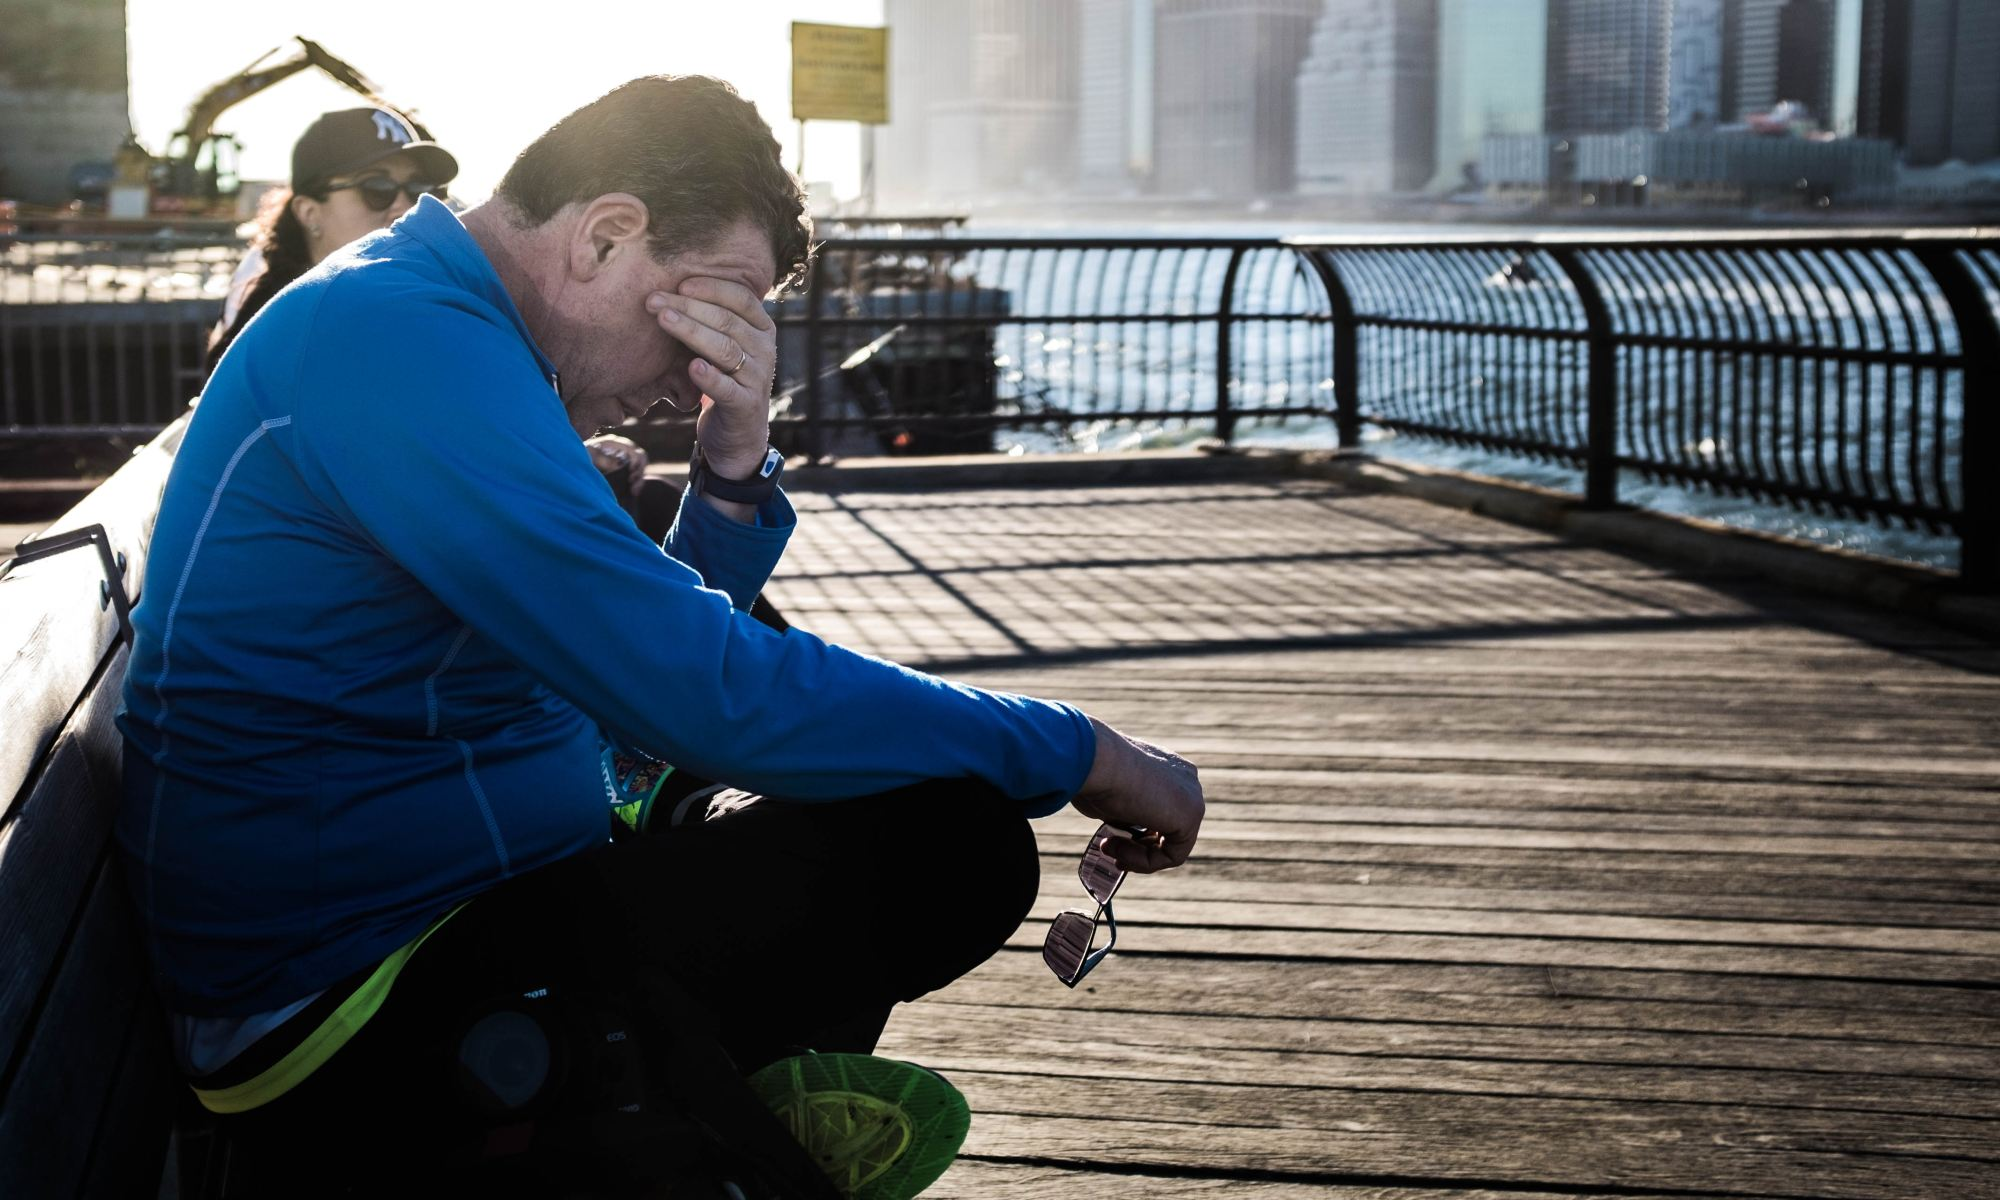 Fatigued man sitting on bench besides body of water